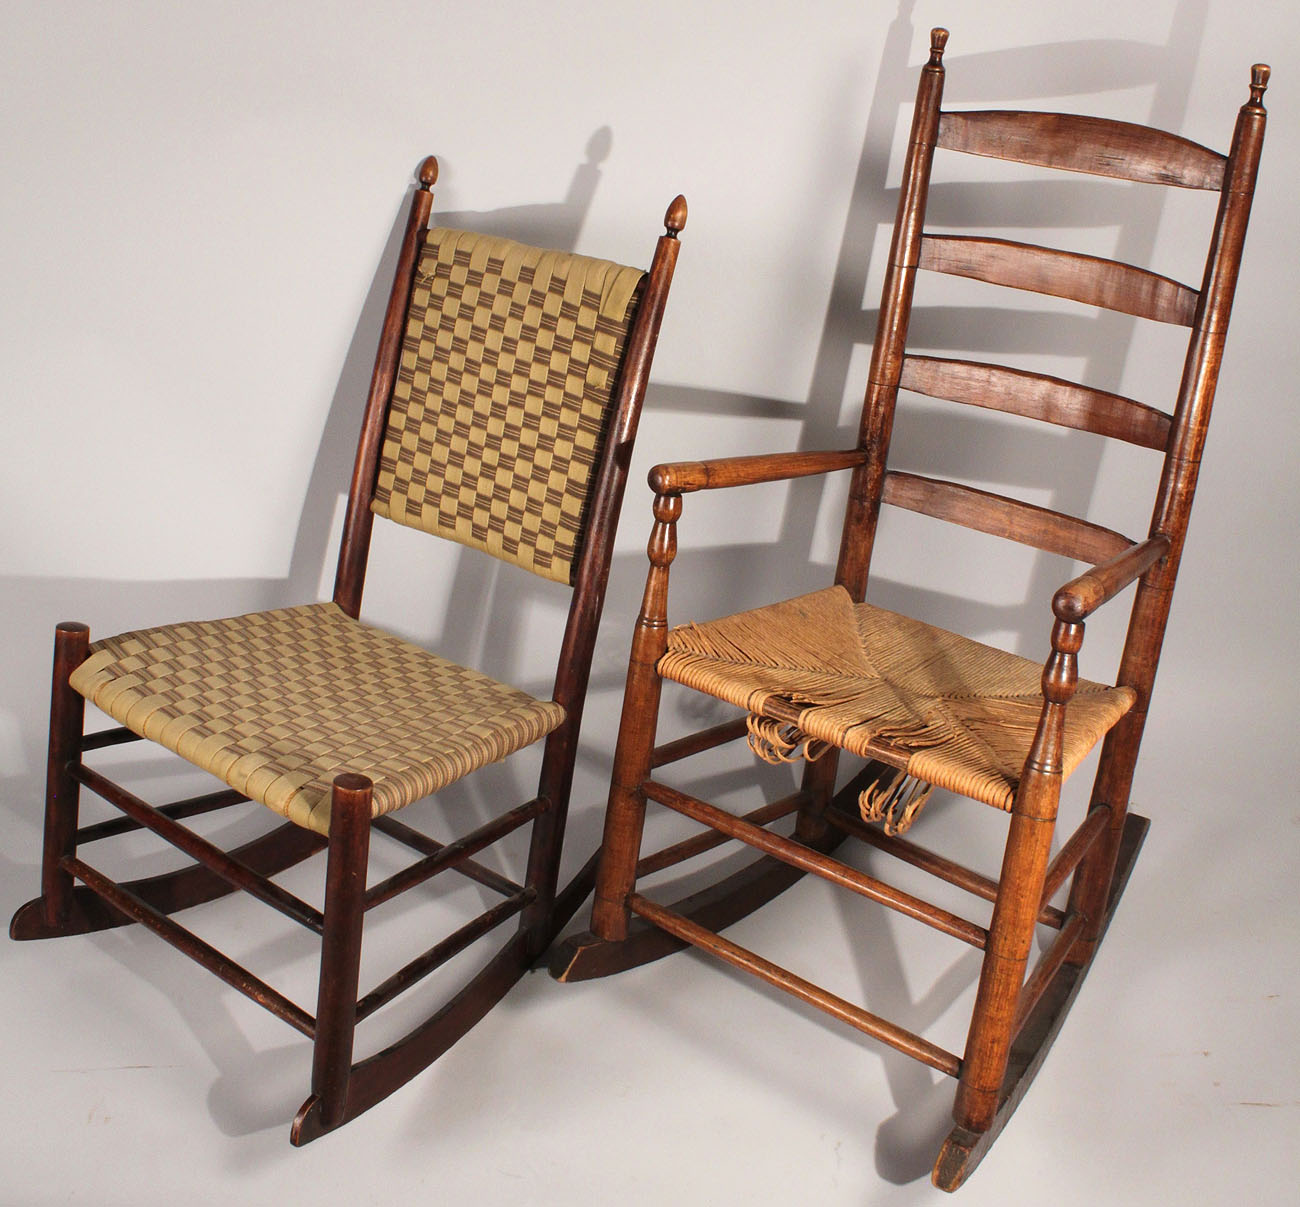 rocking chair for two outdoor cushions bunnings lot 449 2 chairs shaker and tennessee